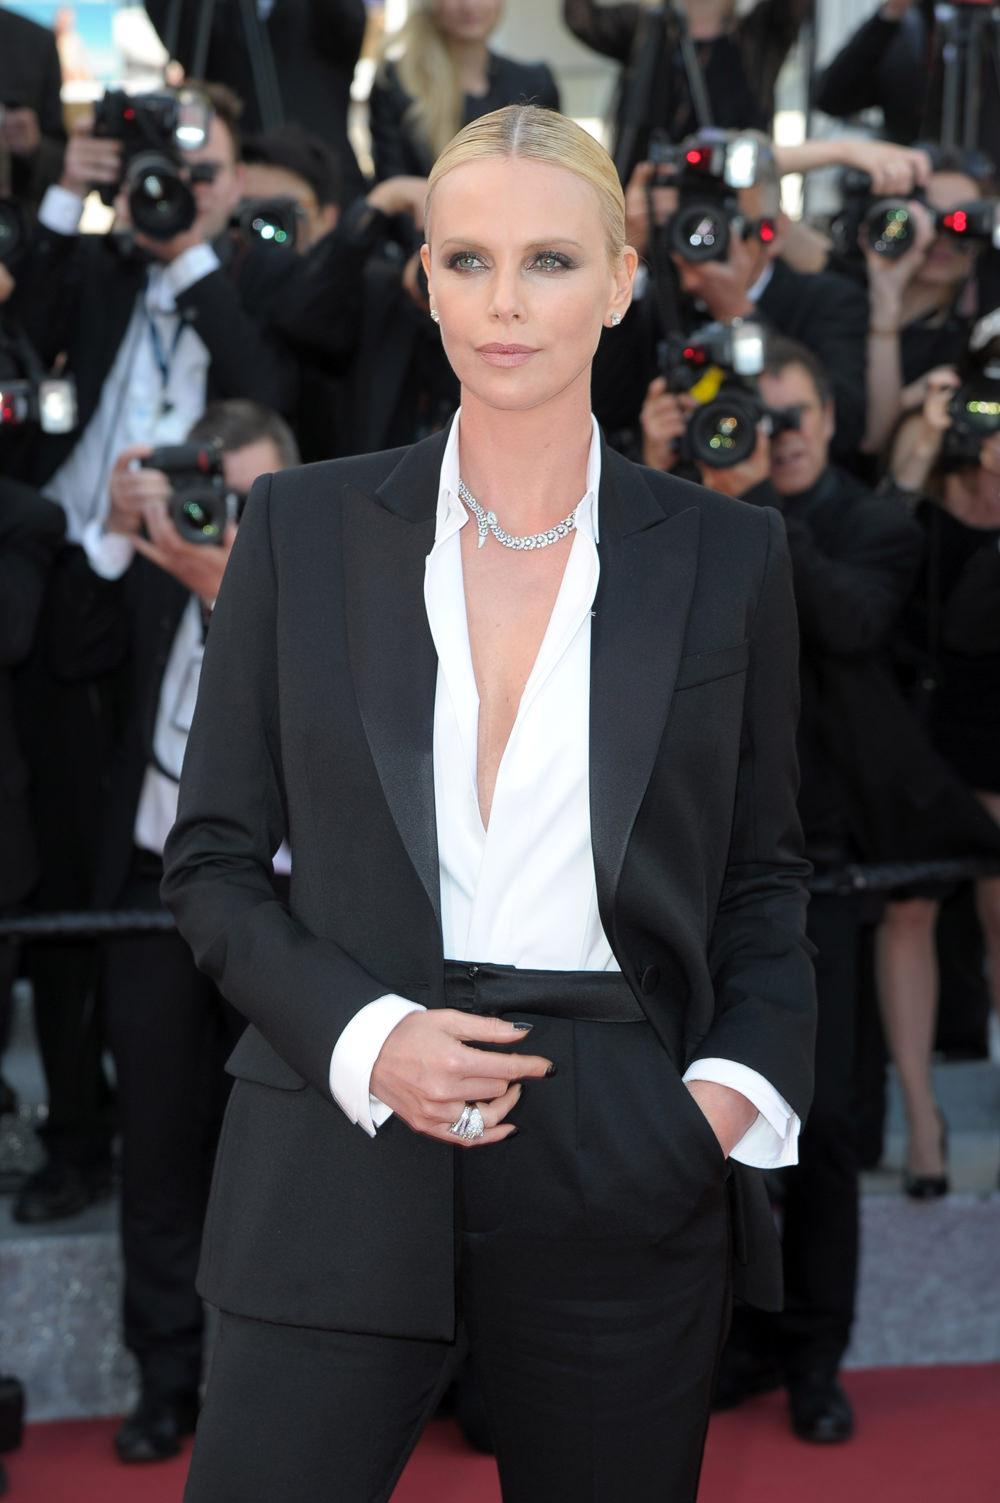 Charlize Theron at the Cannes premiere of 'The Last Face'